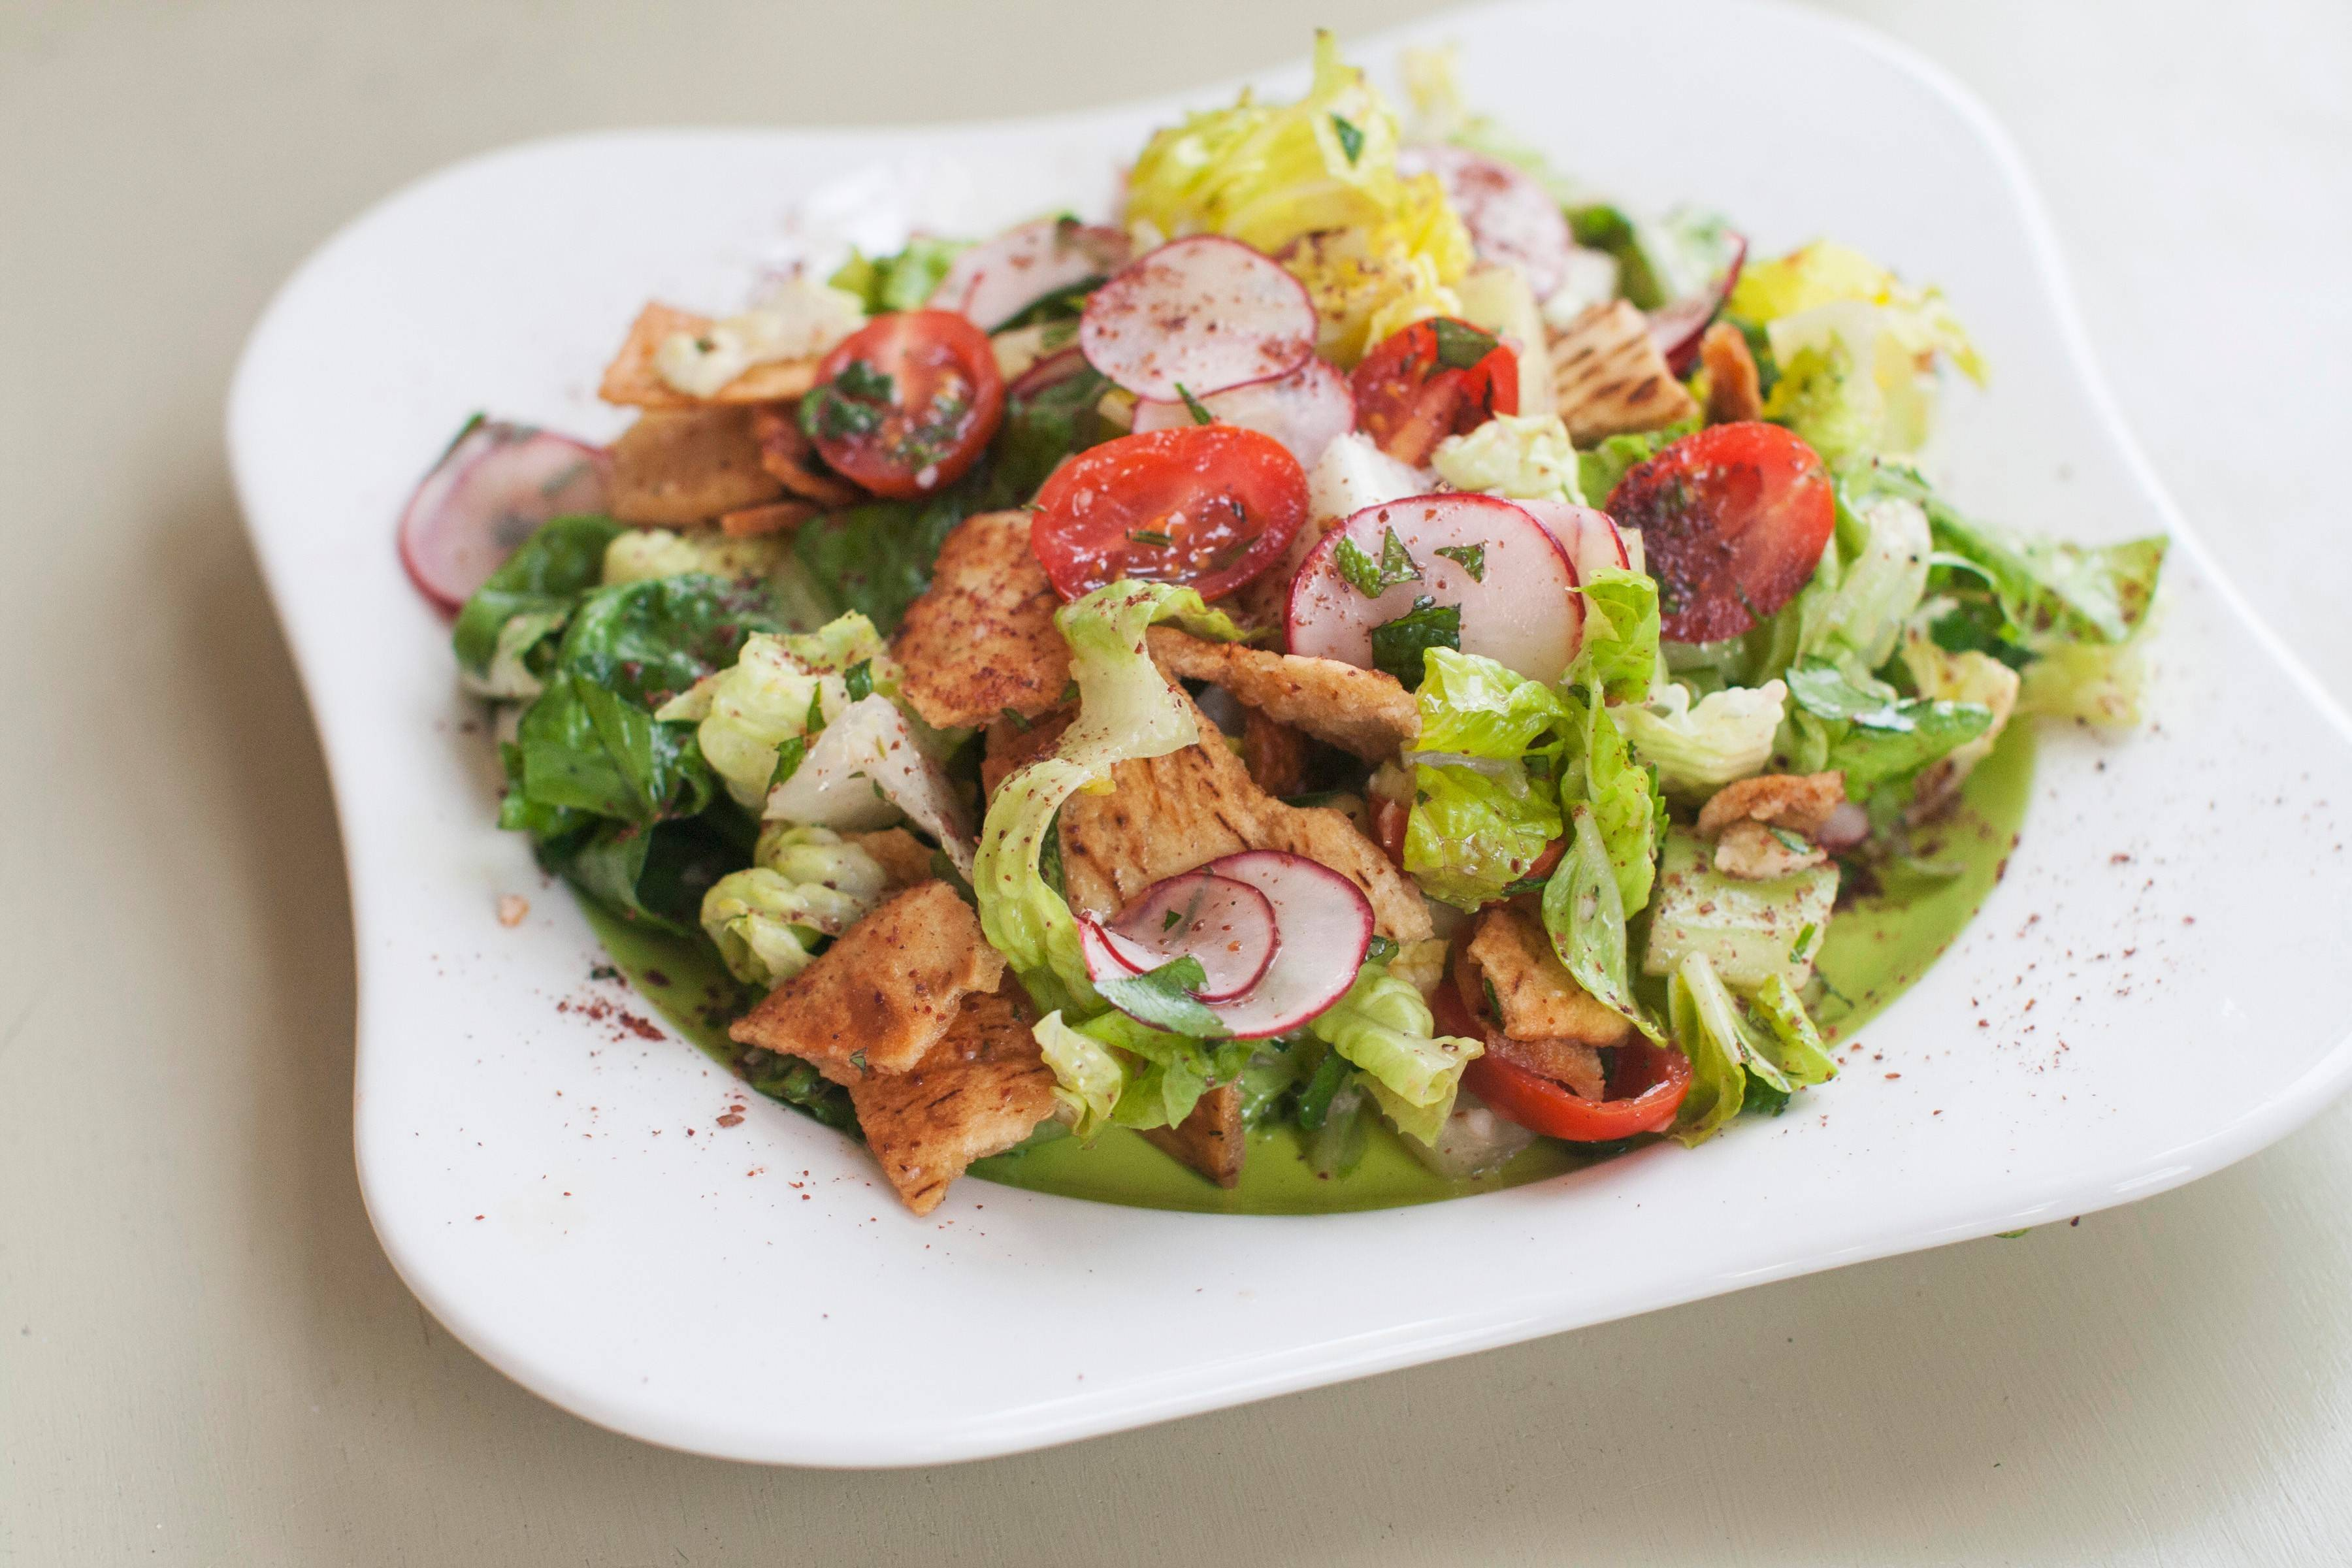 While living in Paris, chef and cookbook author David Lebovitz has perfected fattoush, a Middle Eastern salad with pita crumbles.